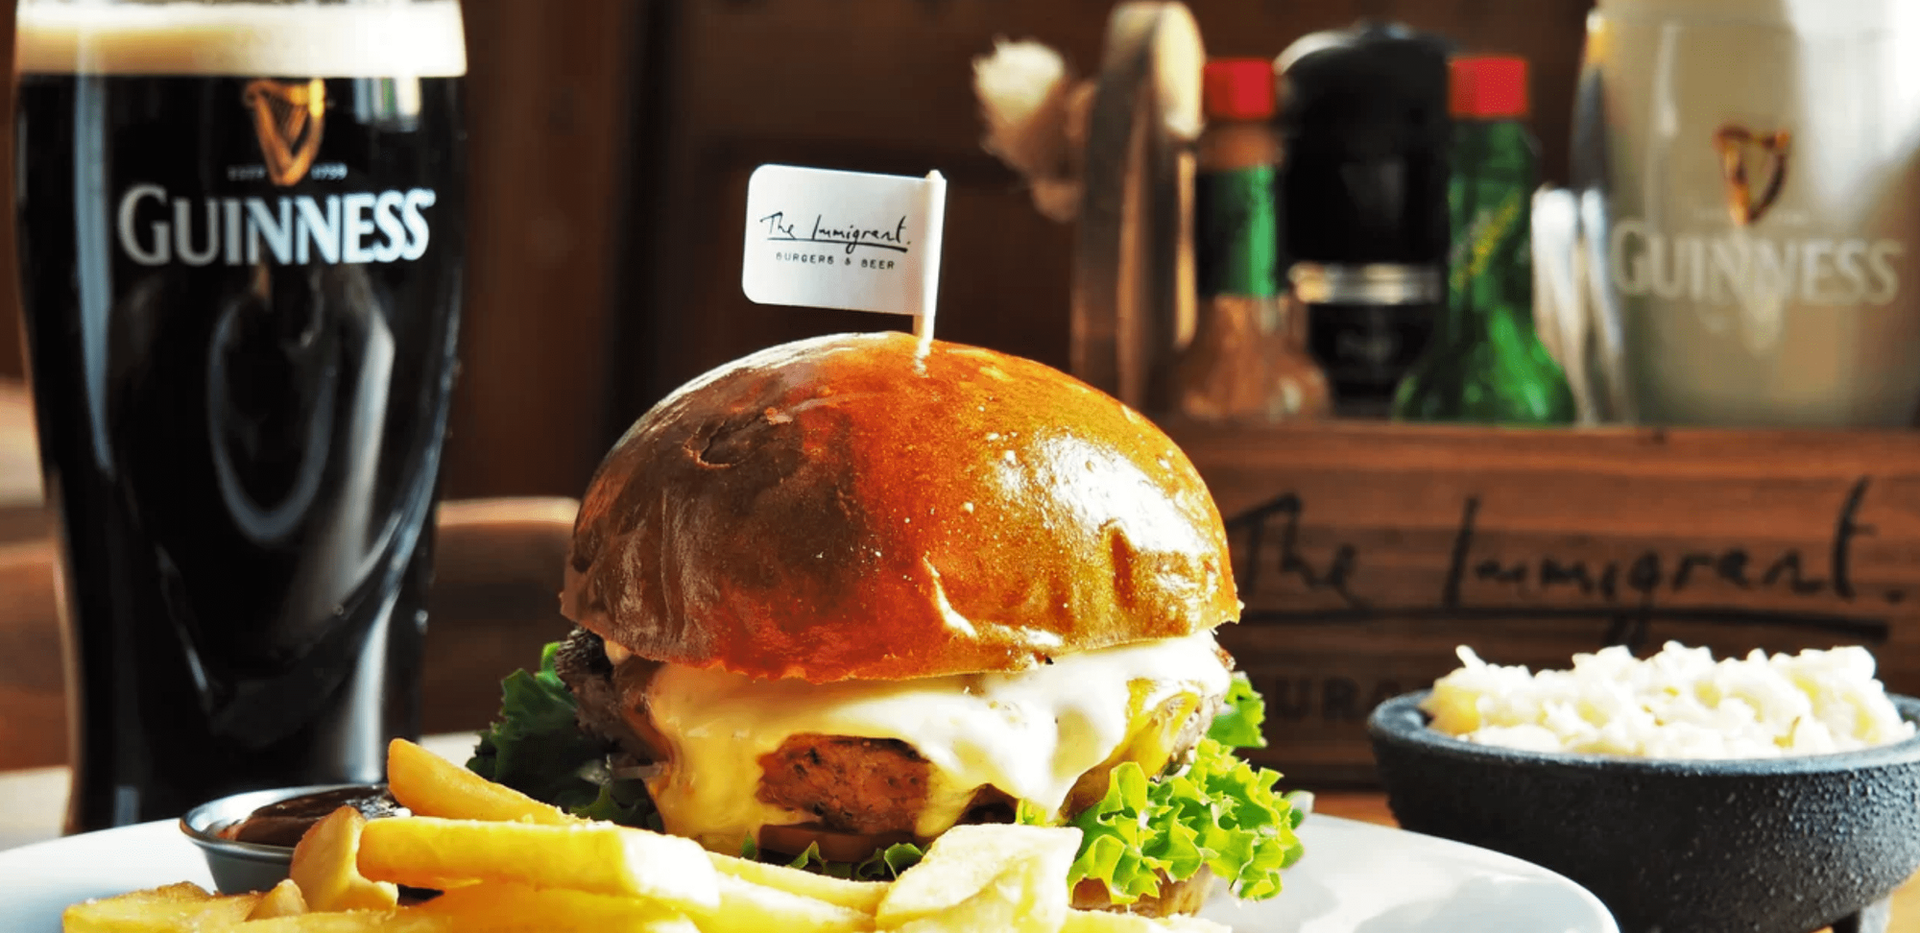 Burger and guinness-min.png